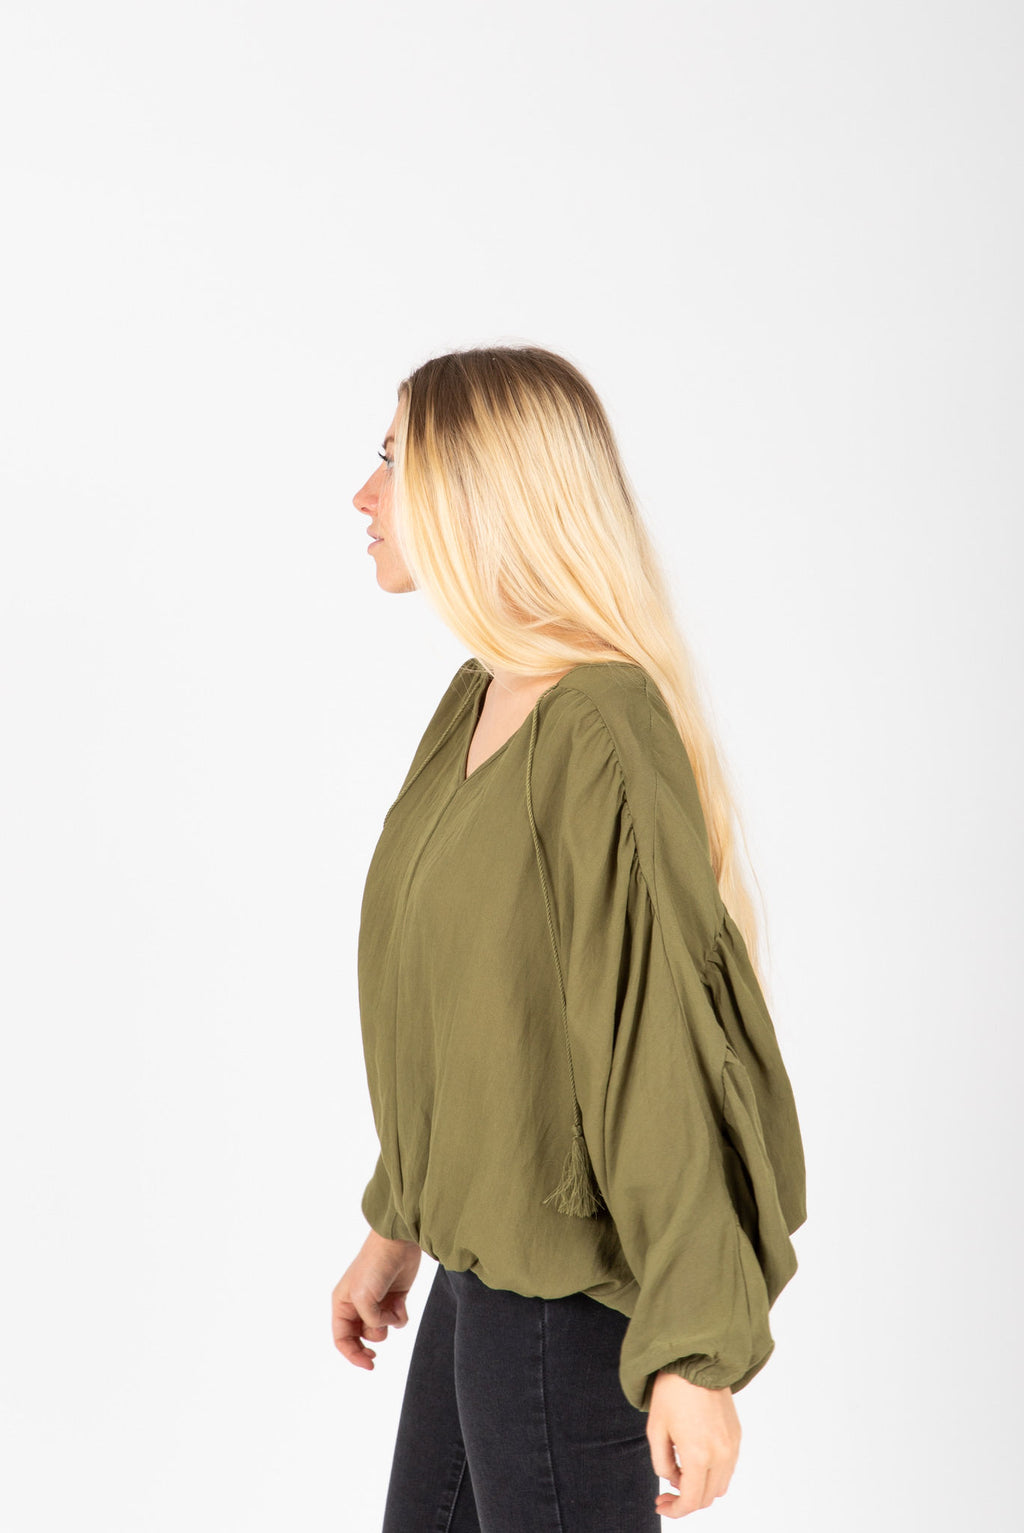 The Rink Tassel Detail Blouse in Olive, studio shoot; side view